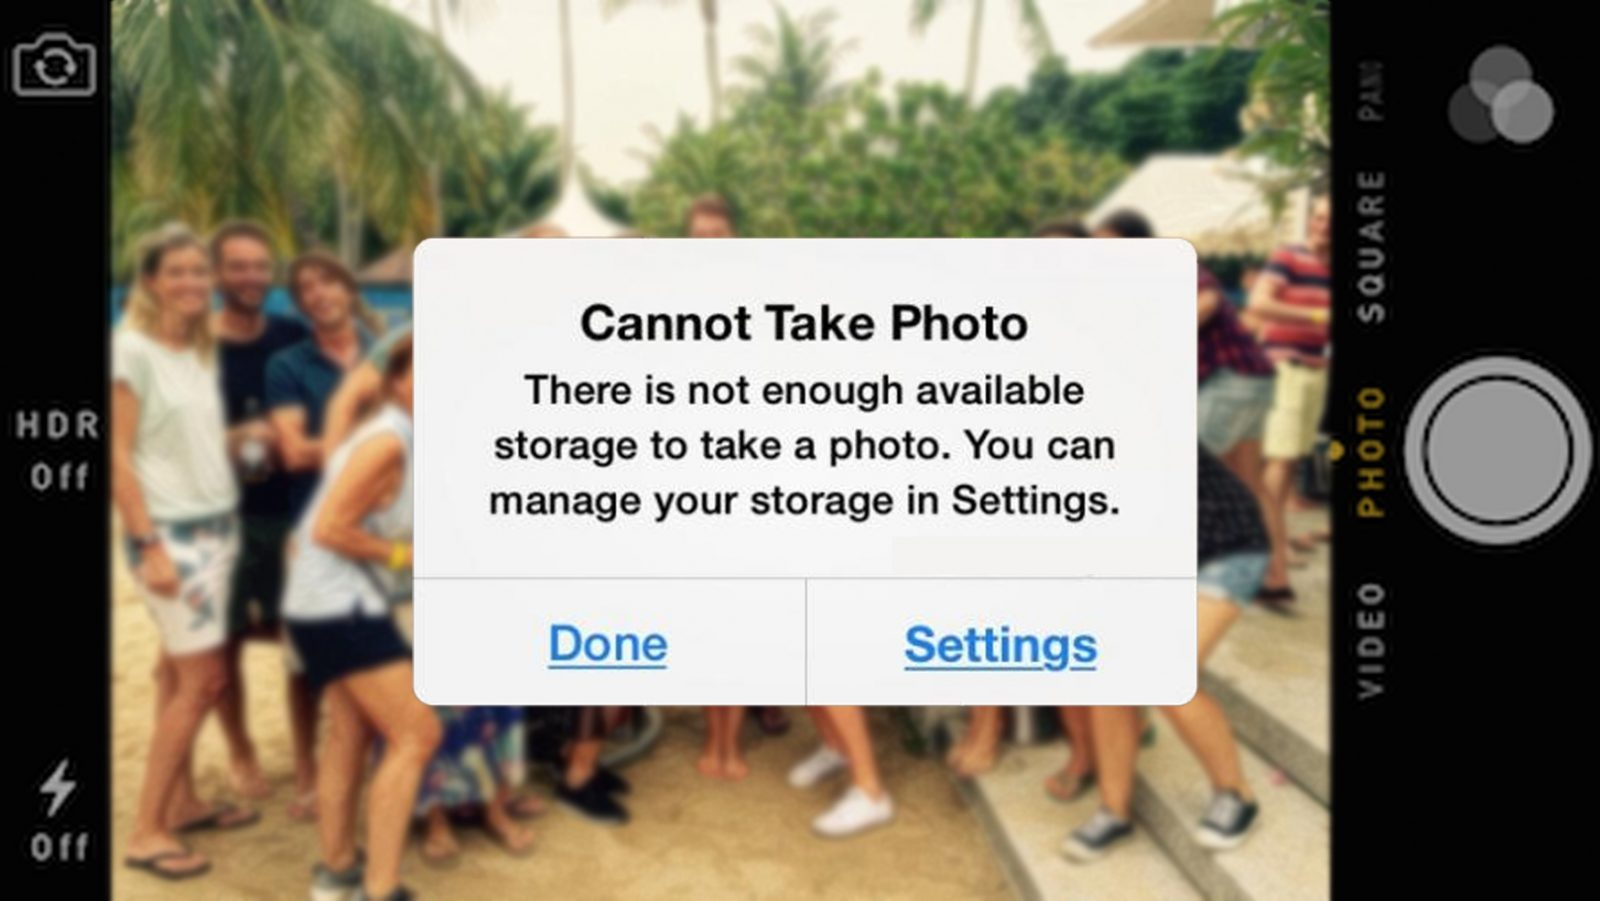 cannot take photo there is not enough available storage